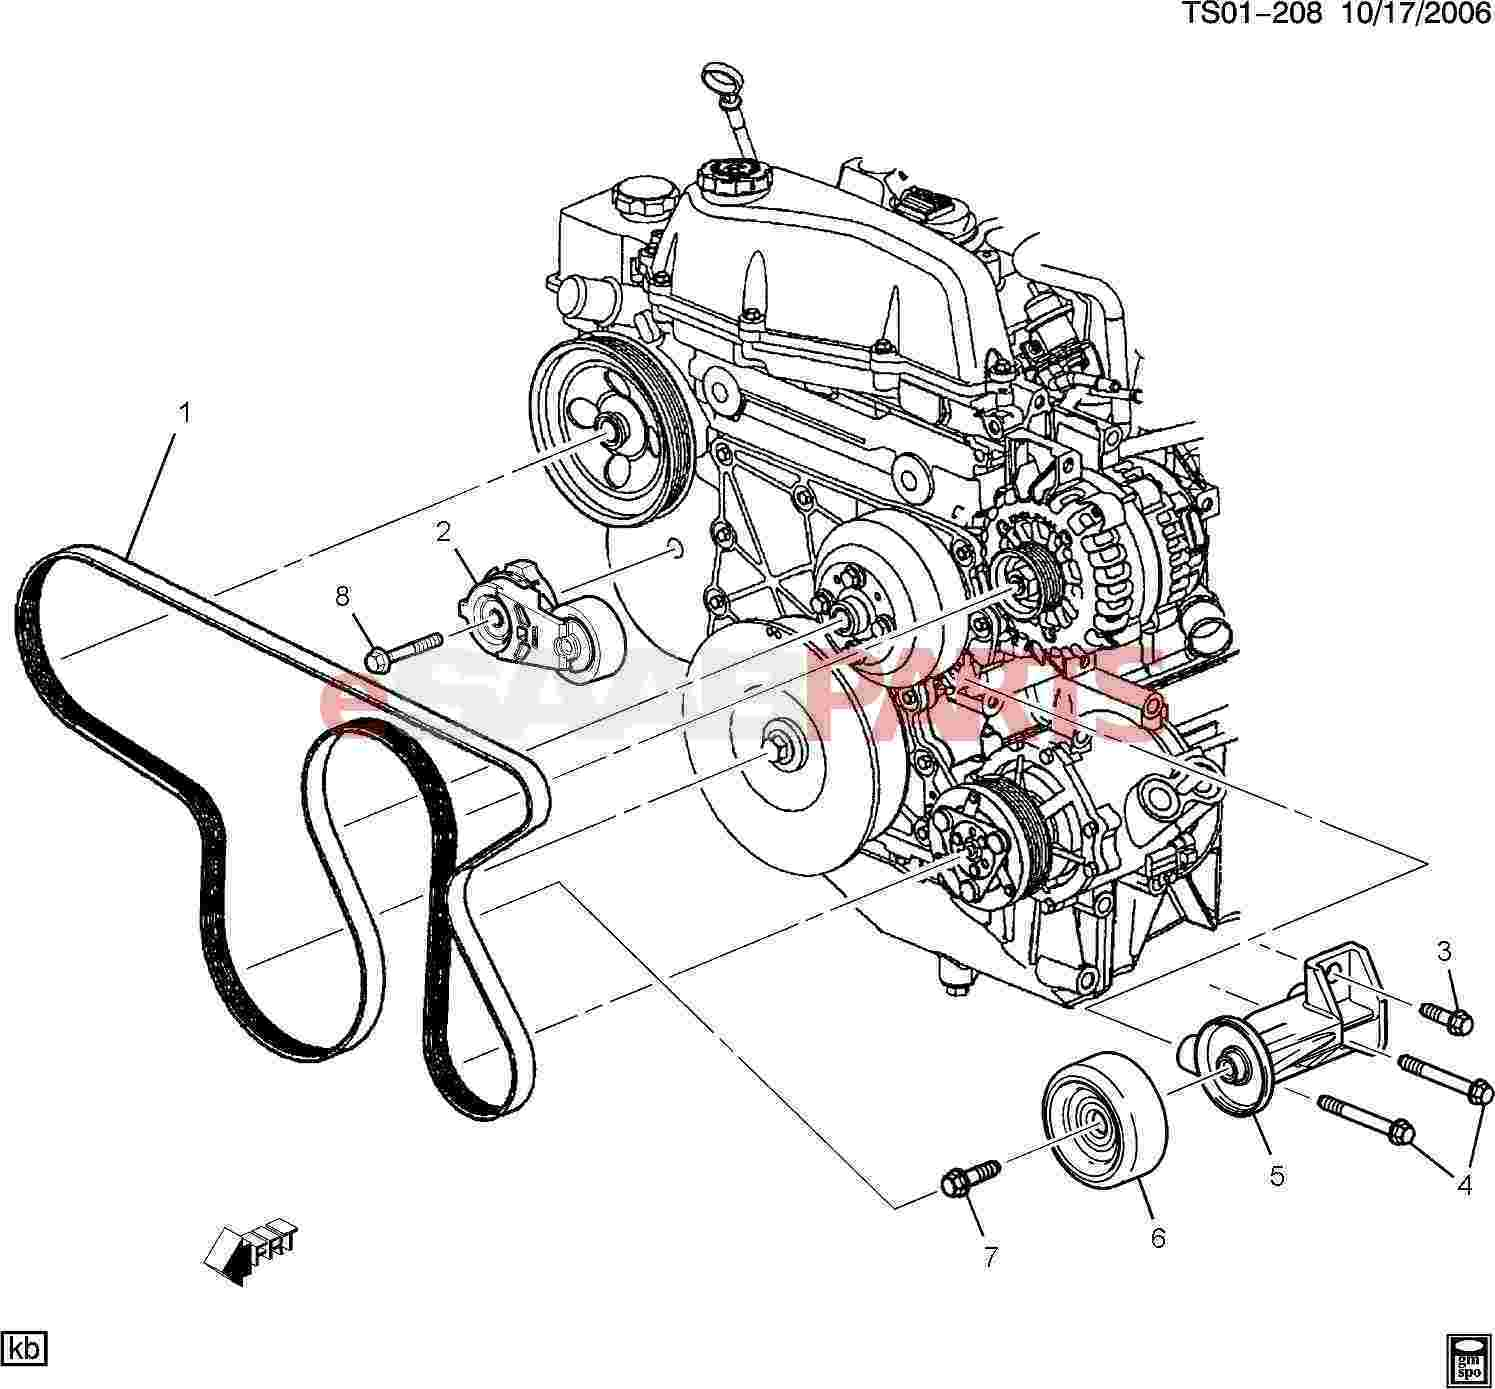 hight resolution of envoy 4 2 engine diagram wiring library rh 57 codingcommunity de honda 2 4 engine diagram pontiac